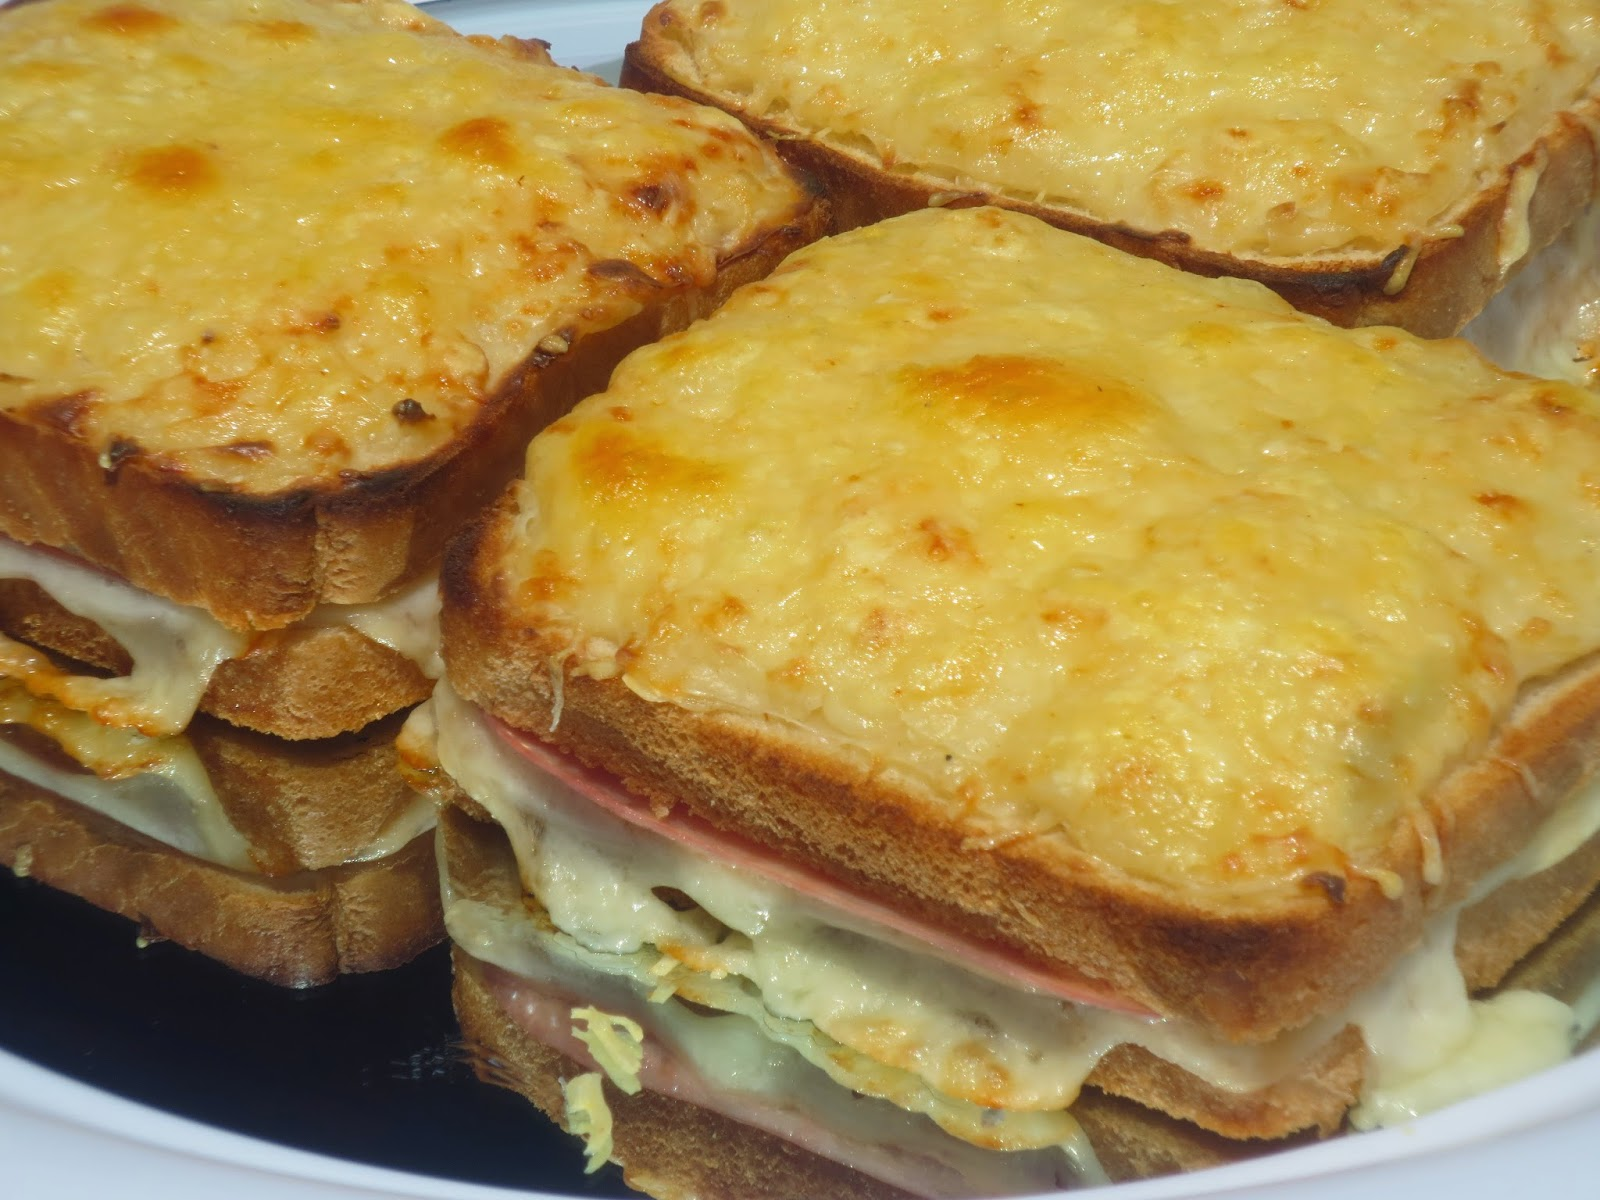 Sandwich Croque-monsieur Ana Sevilla con Thermomix